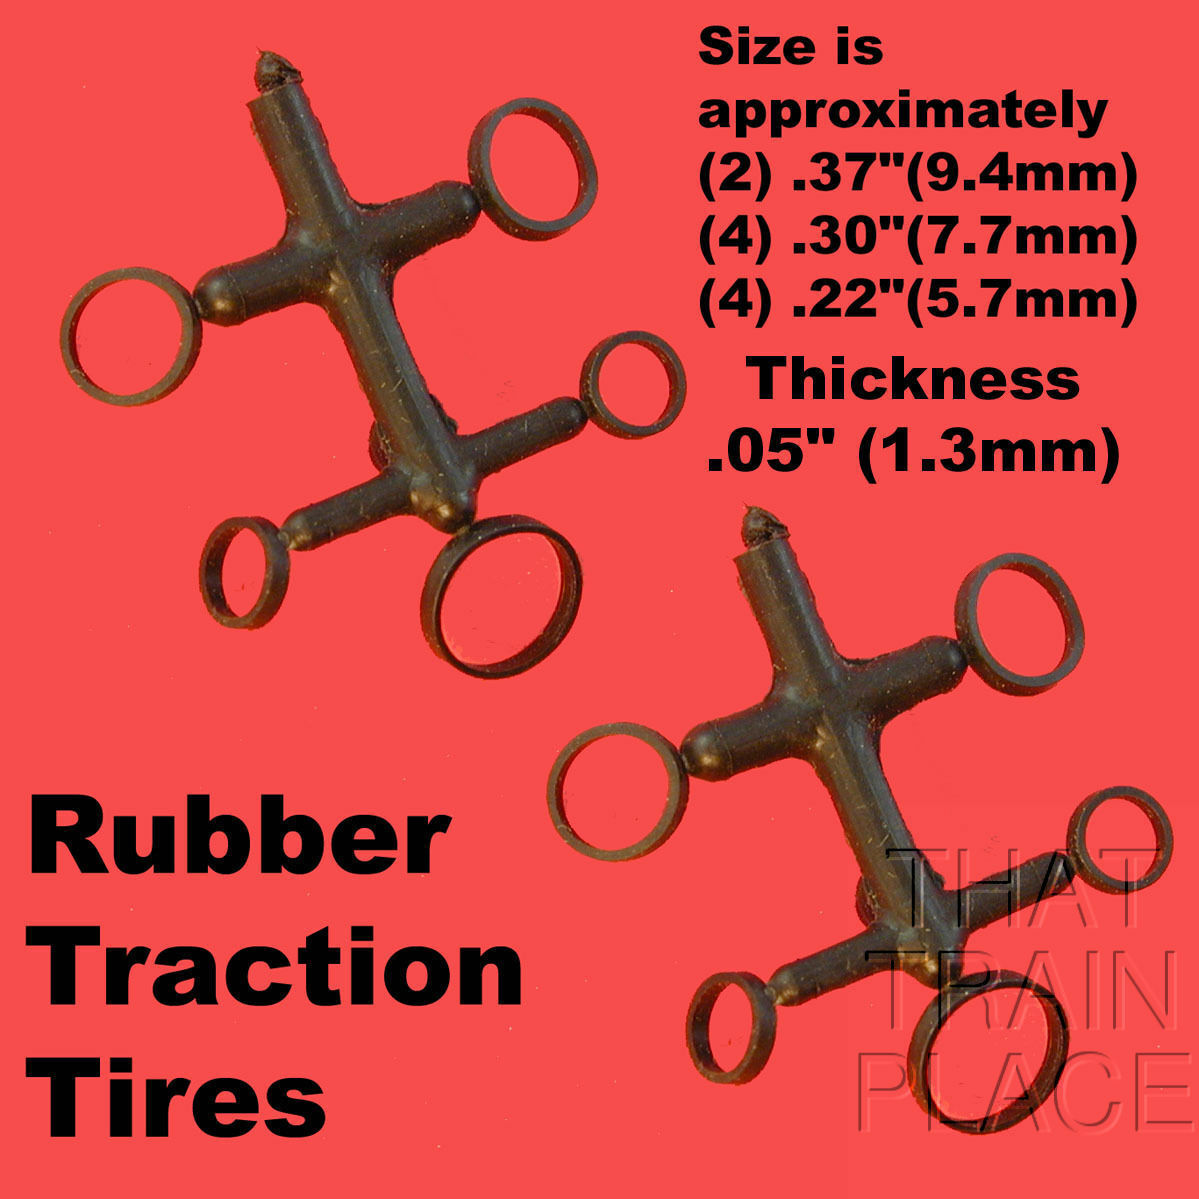 N Scale Traction Tires steam-large 9mm x 1mm XT replacements for most brands.